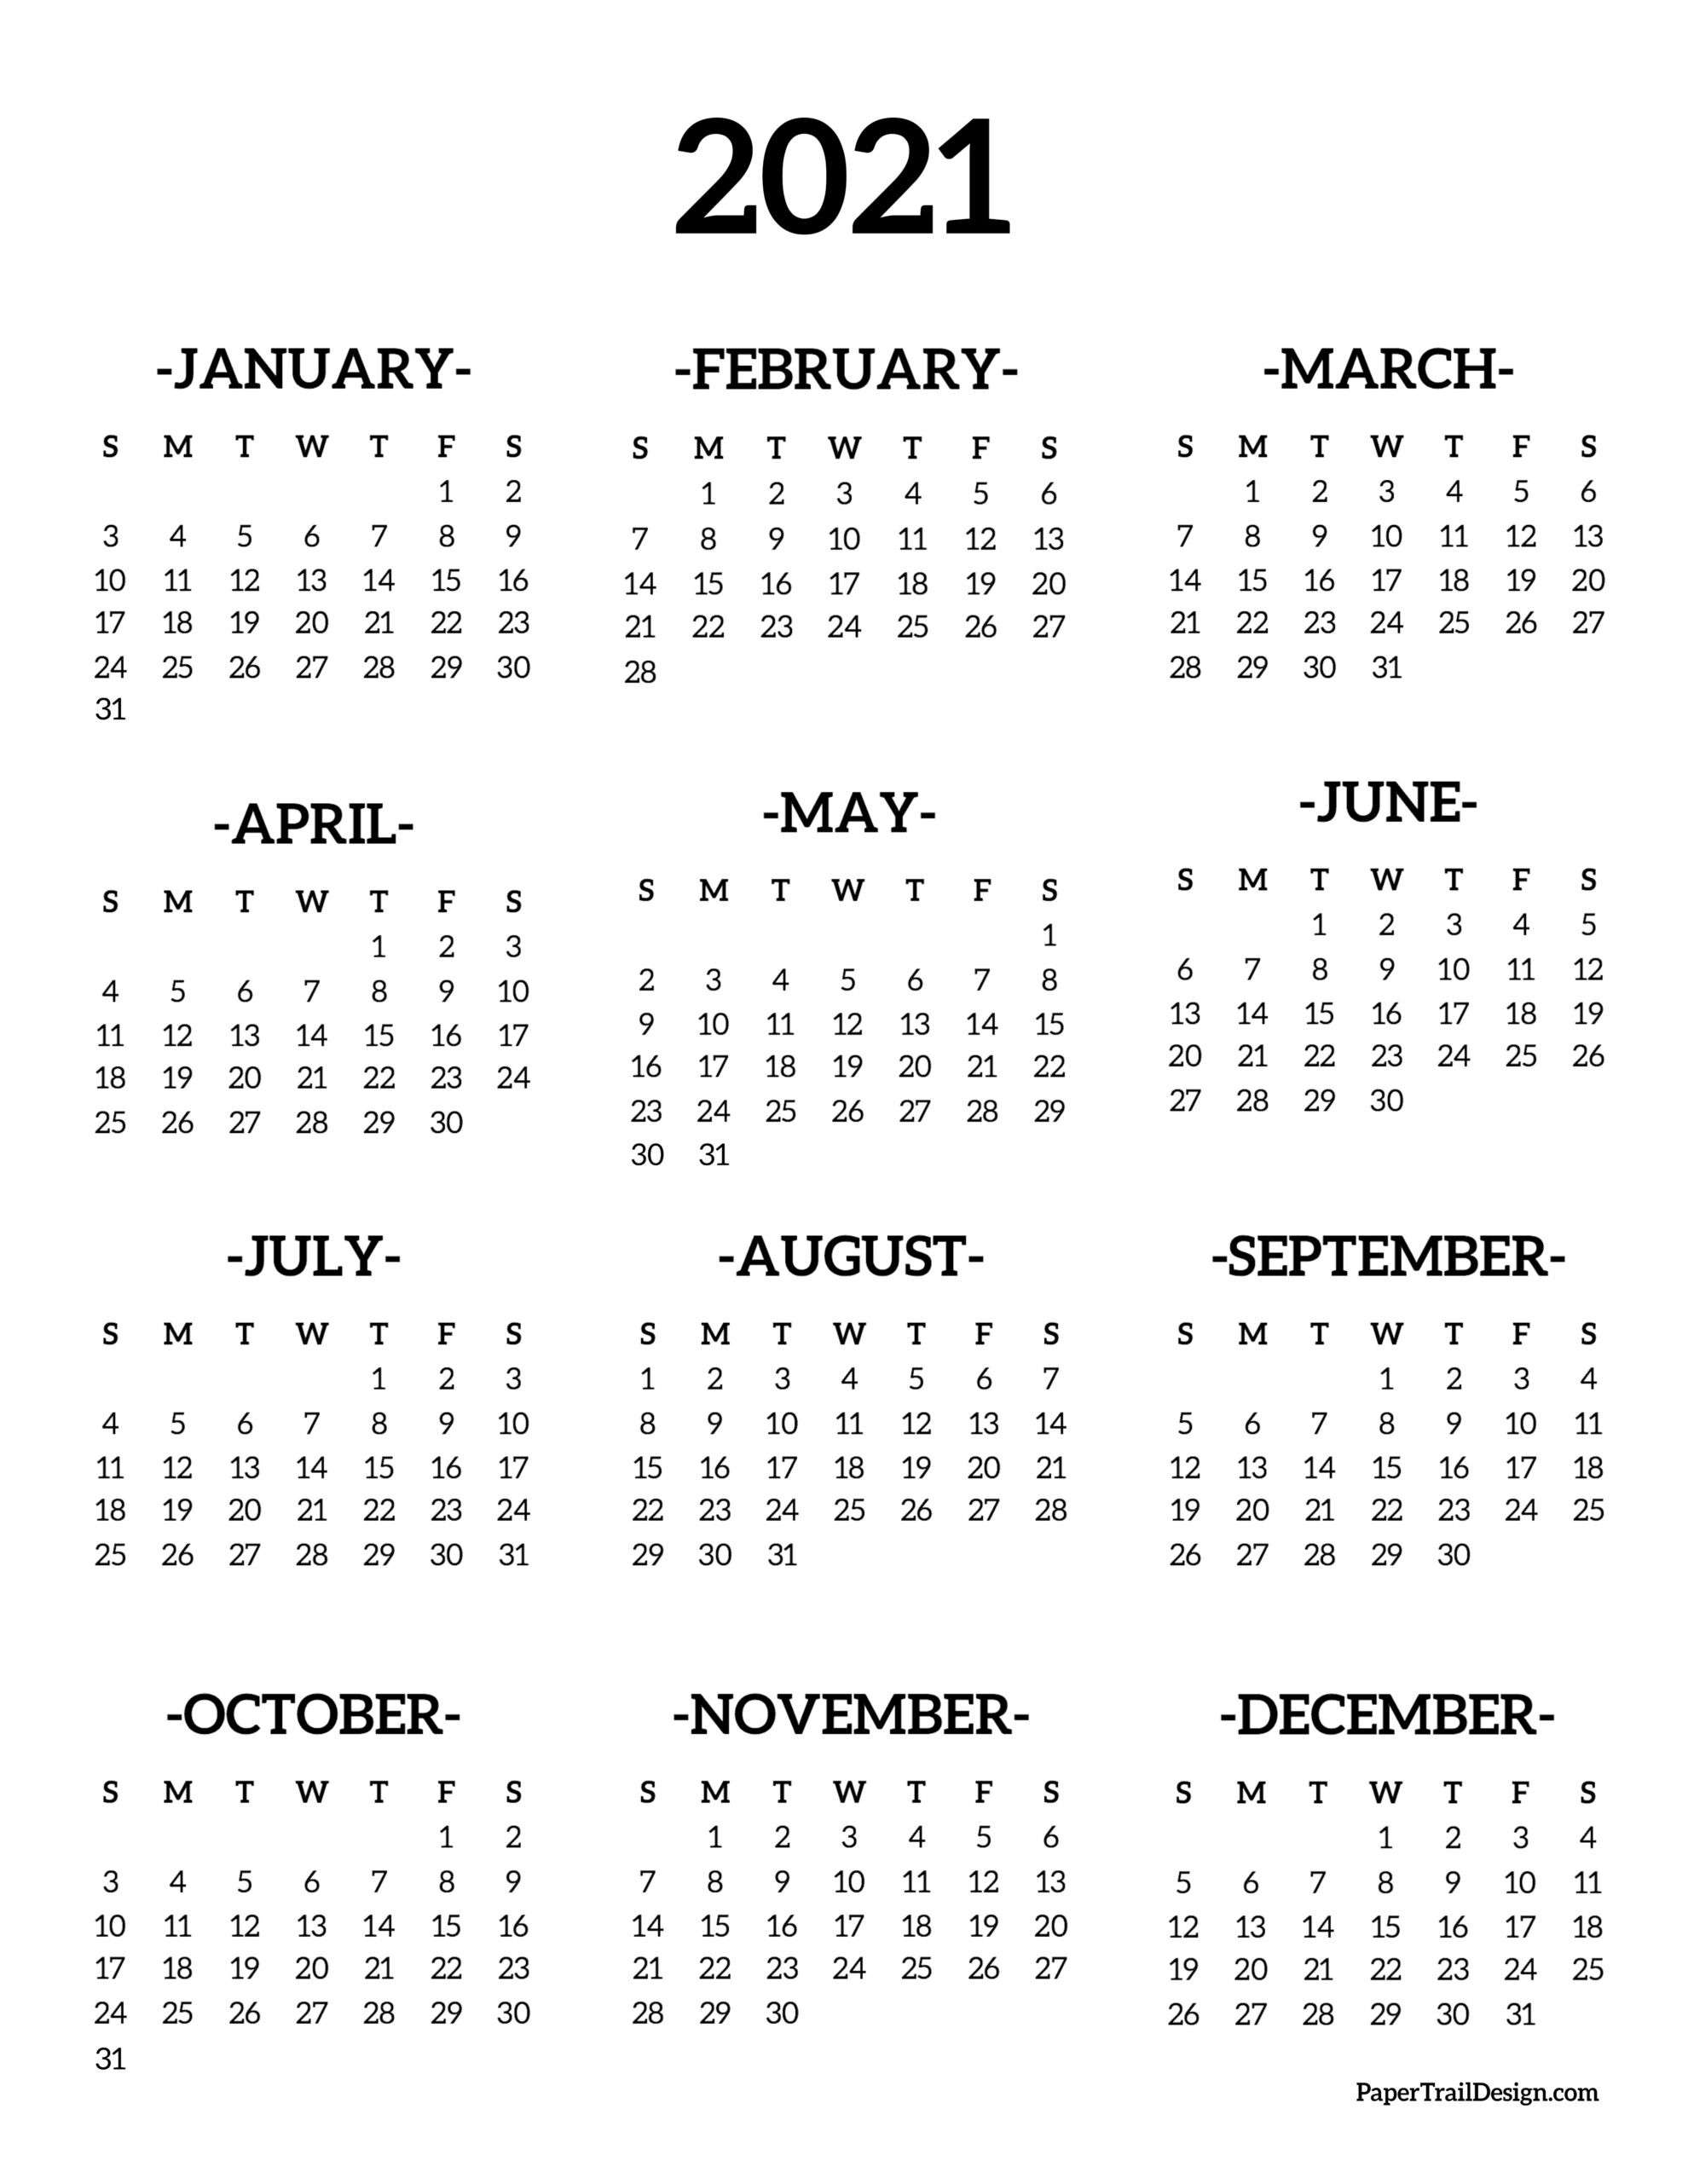 Calendar 2021 Printable One Page - Paper Trail Design  2021 Calendar Printable One Page